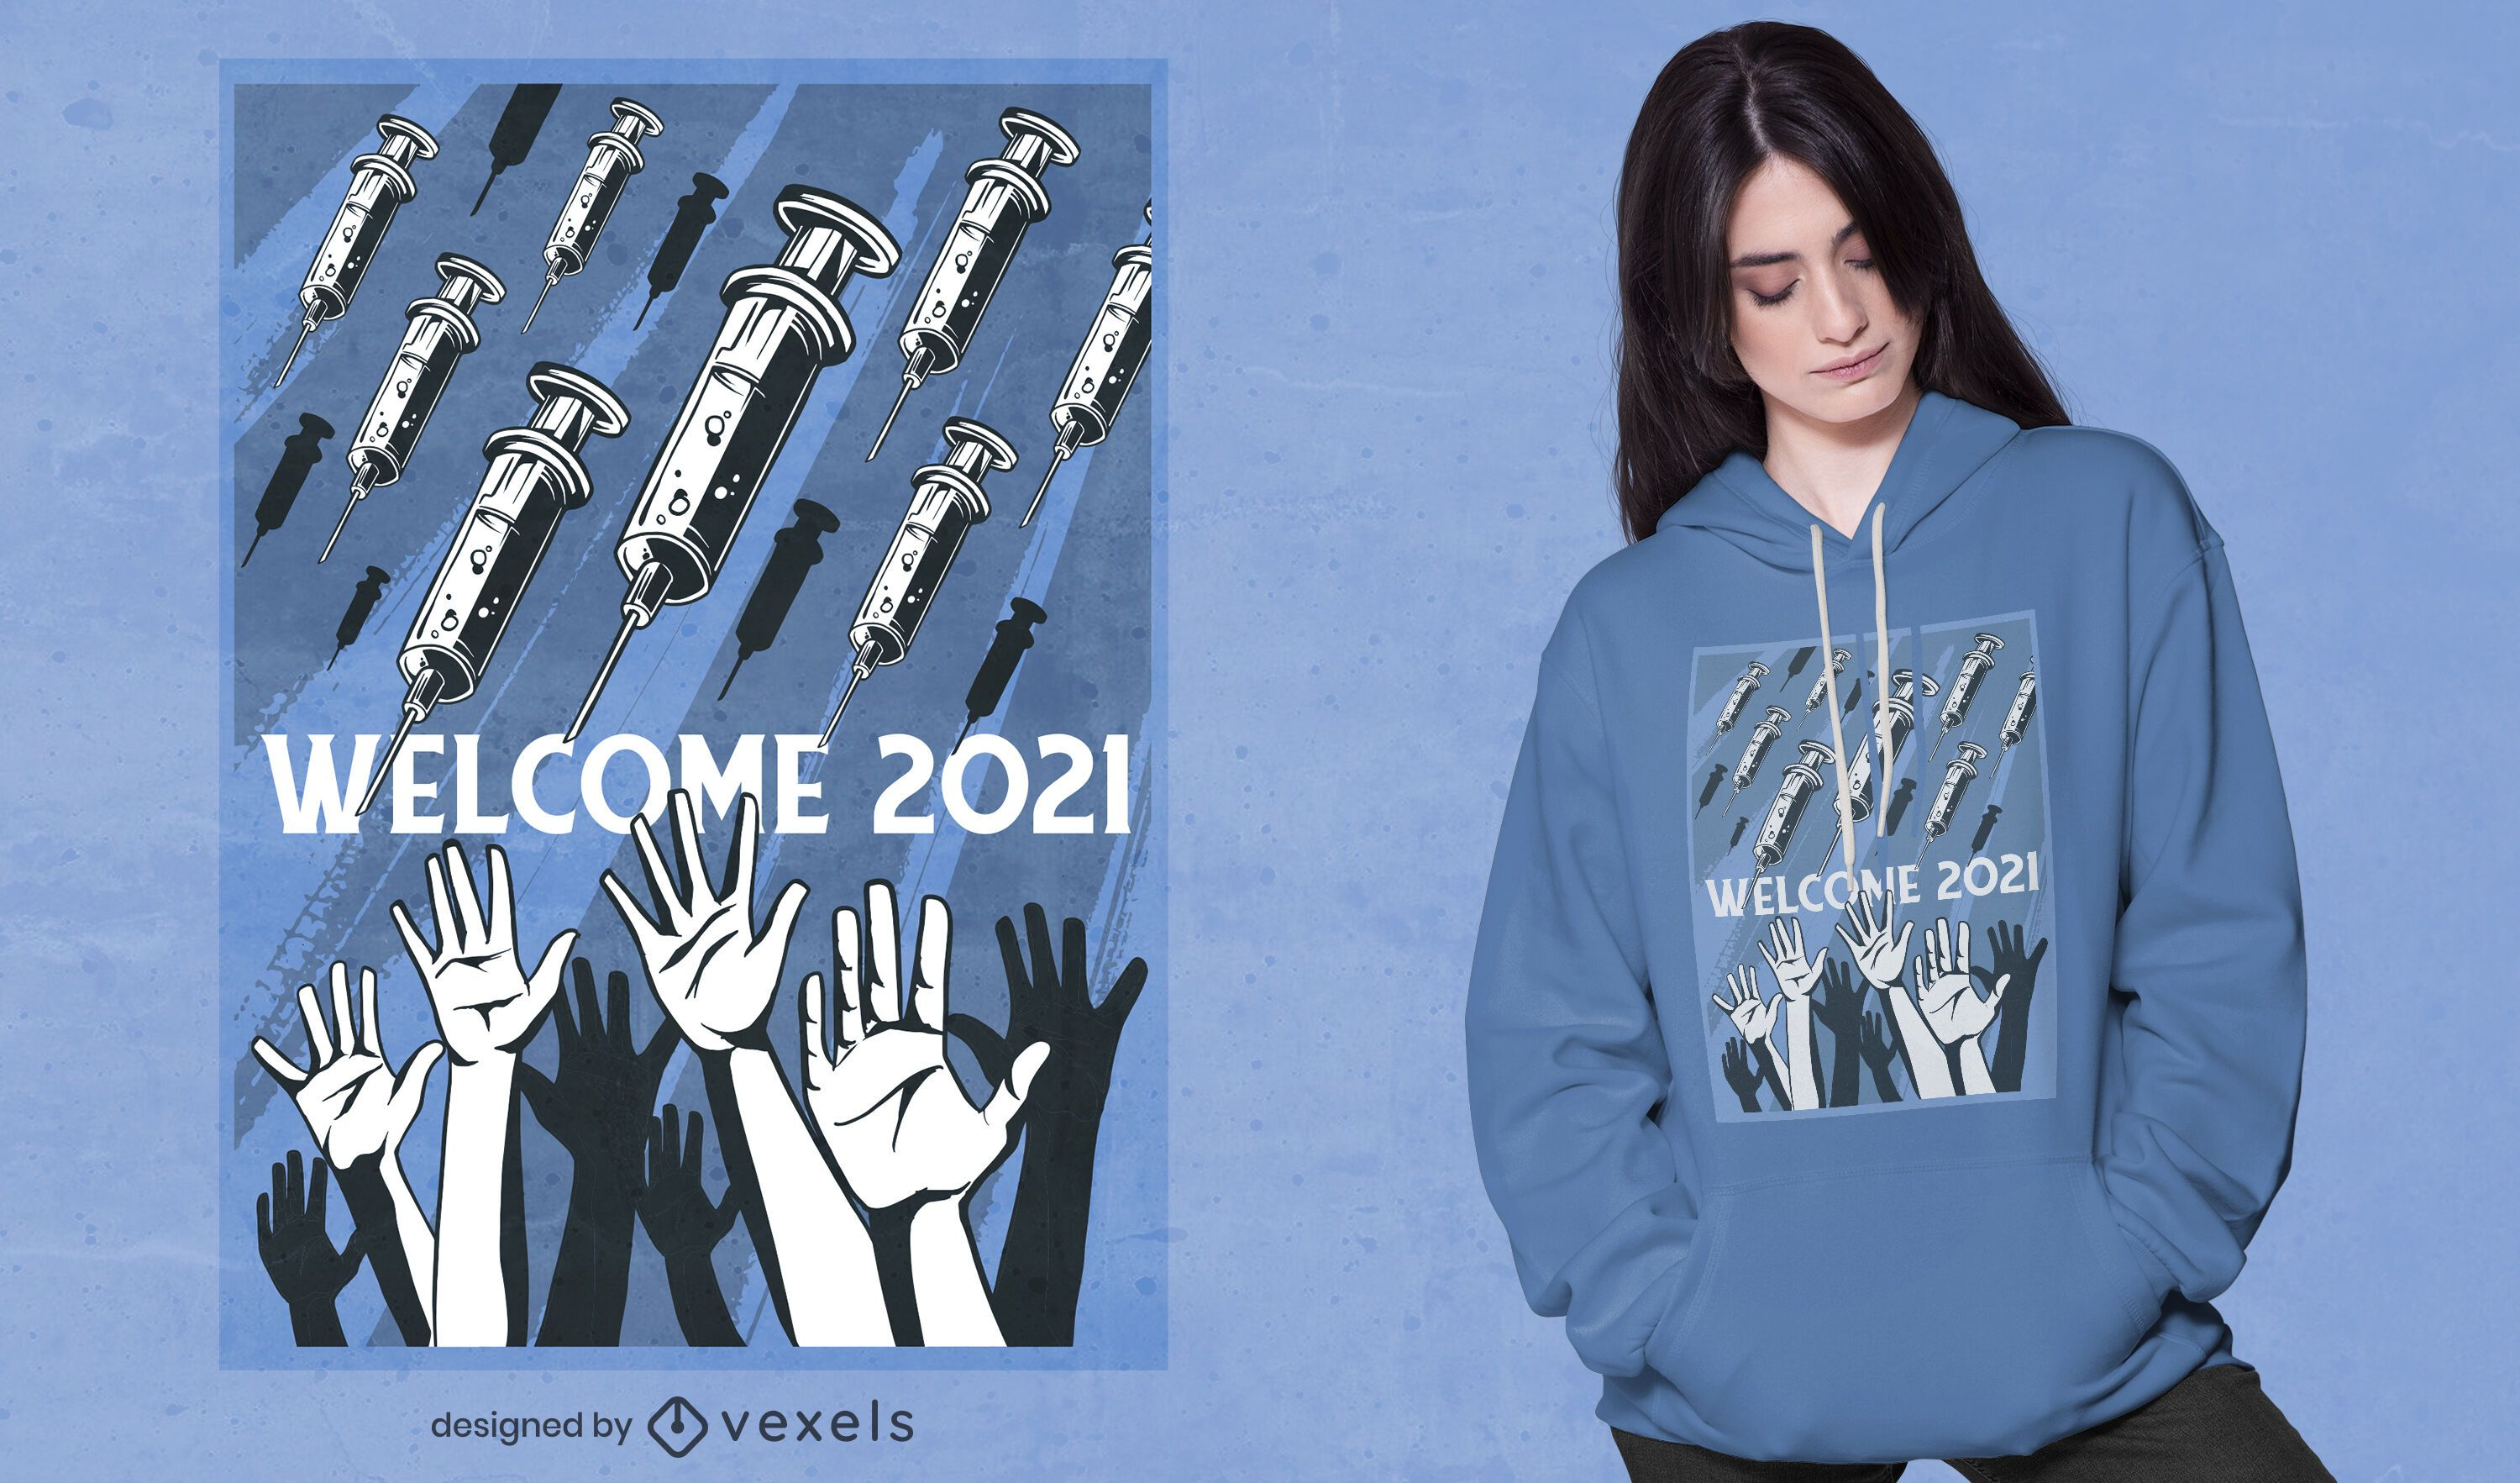 Welcome 2021 vaccines t-shirt design